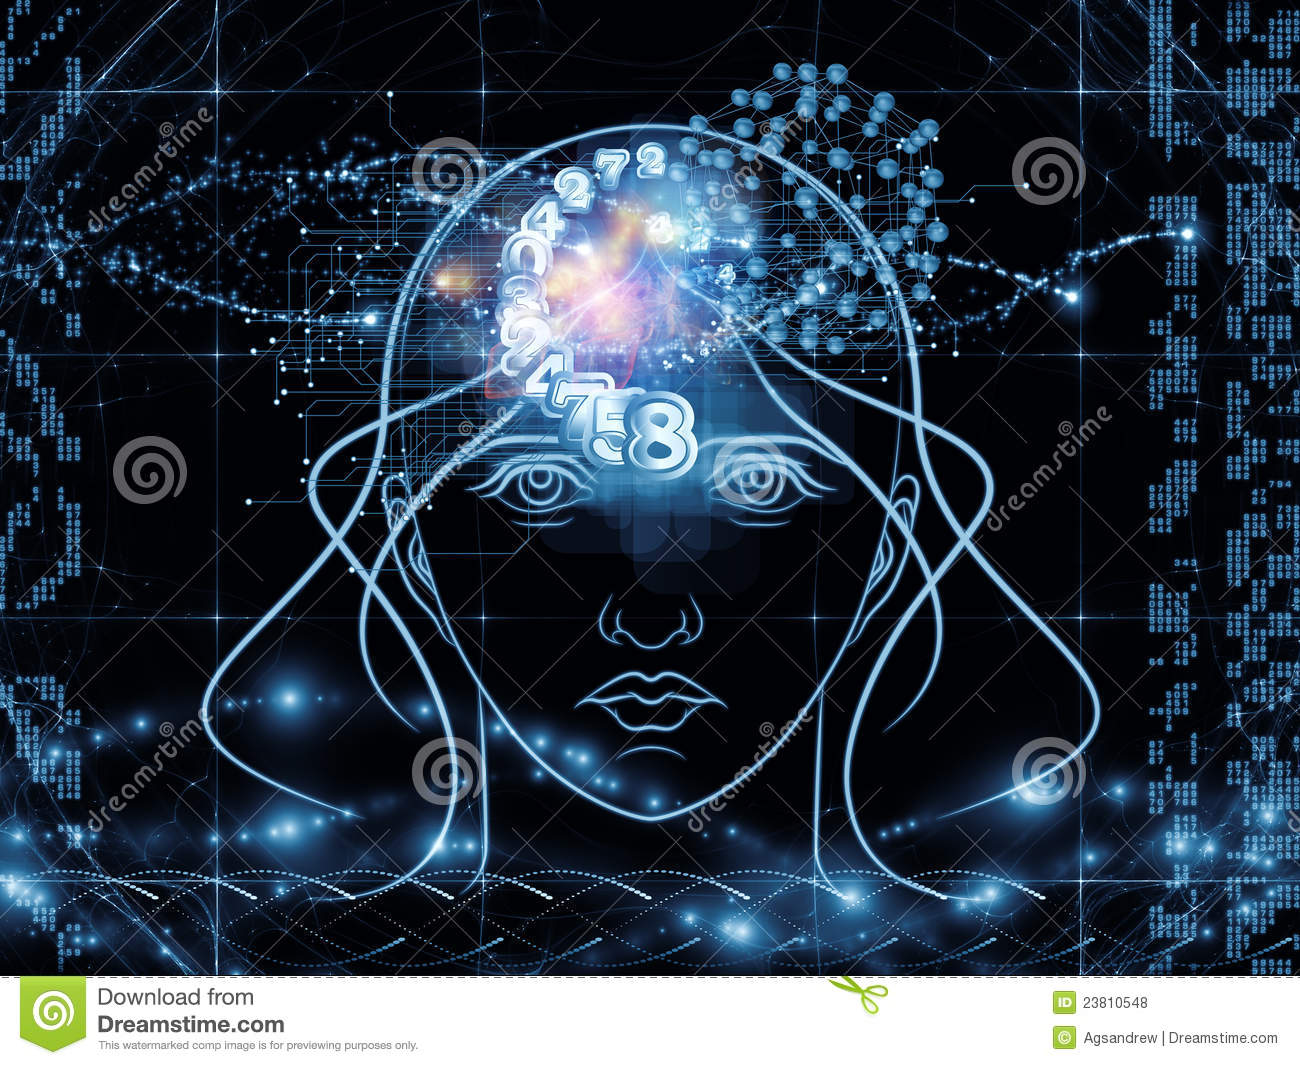 technology human abstract subject head numbers modern digital background science outlines interplay elements lights revolution scientific royalty hacker skull attack